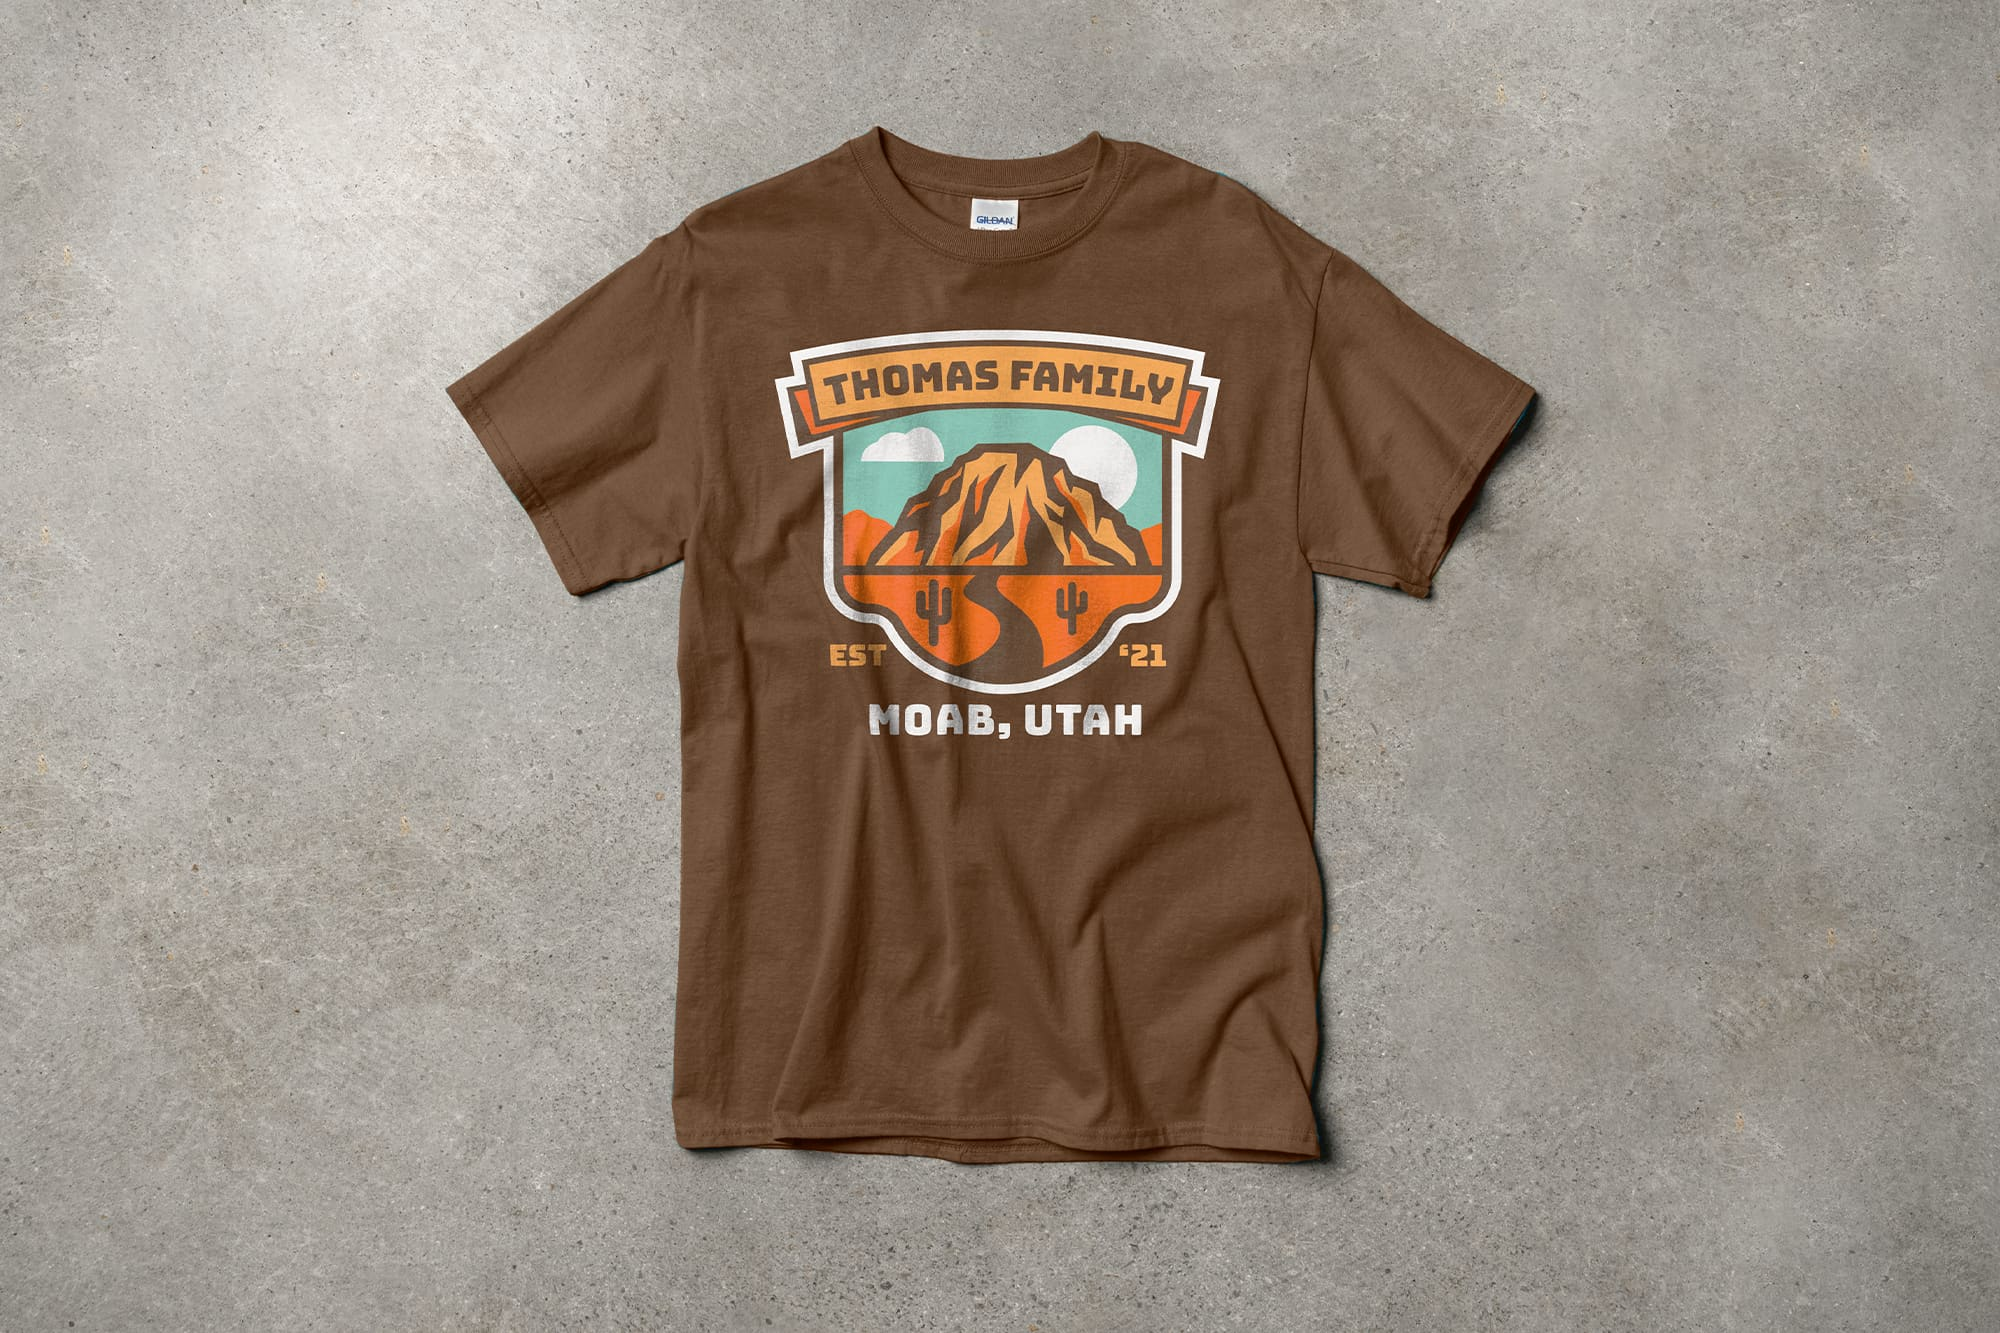 Example of t-shirt design that uses background shapes well.